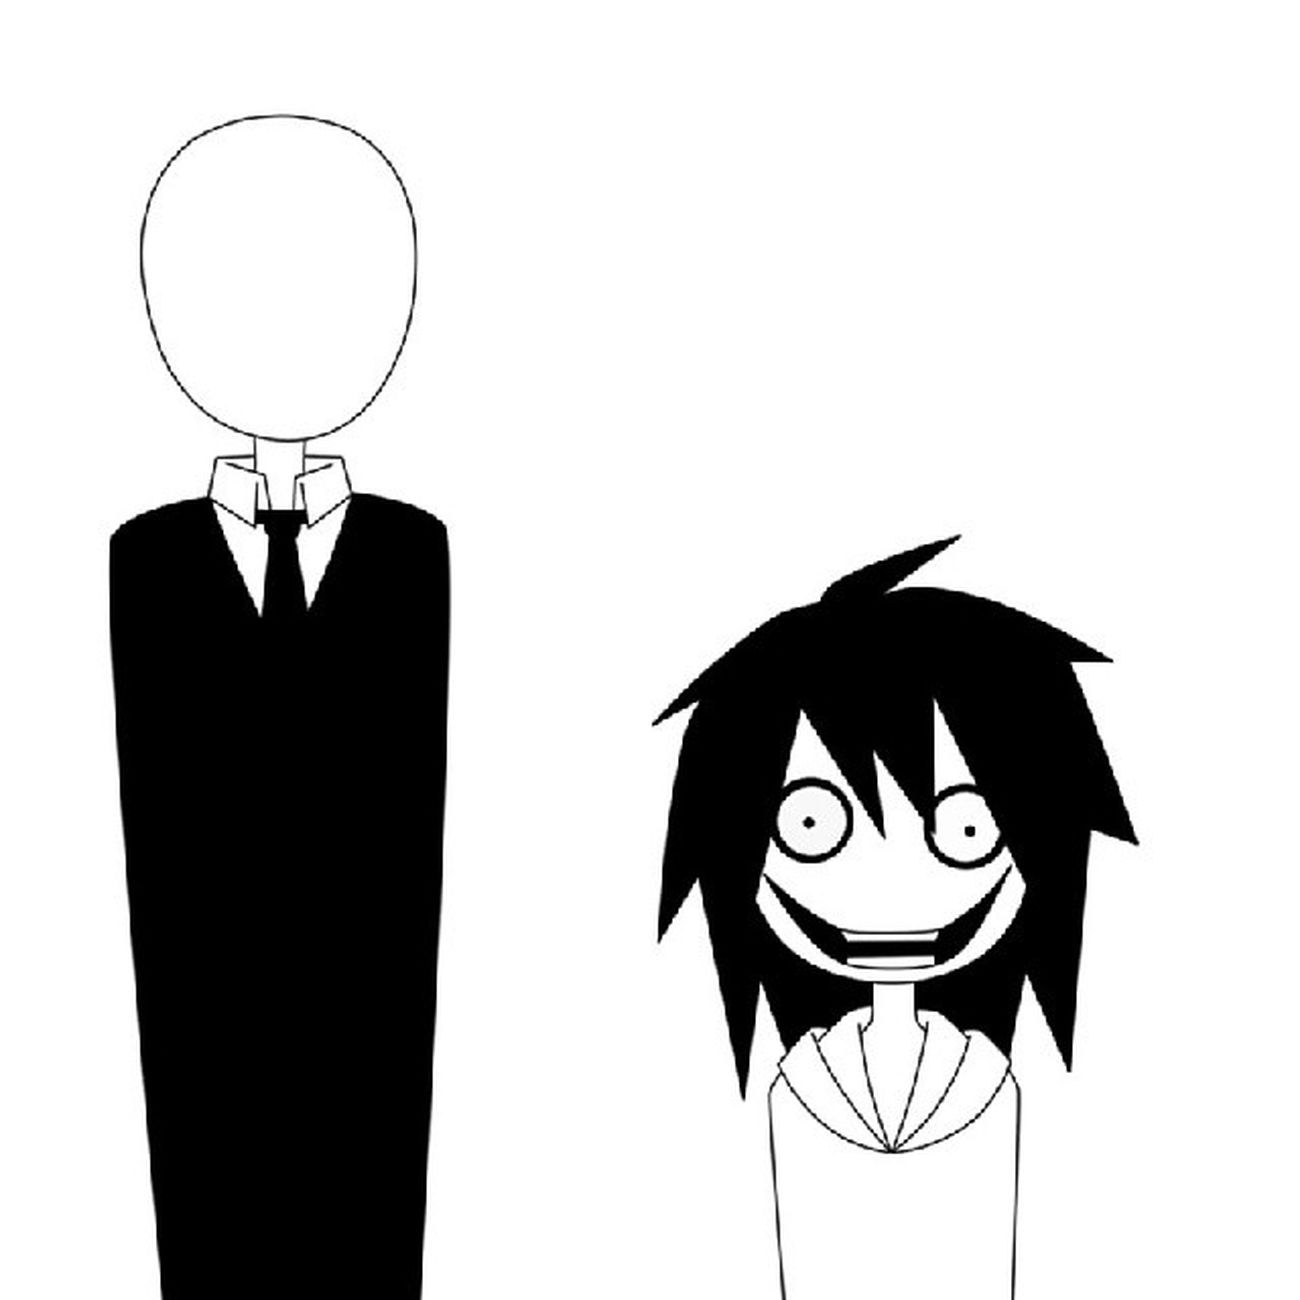 This picture looks like Jeff is that one friend Slenderman ashamed to have. Lol JeffTheKiller SlenderMan Creepypasta MarbleHornets YouTube creepy anime art nerd geek fiction maybe psycho killer gotosleep